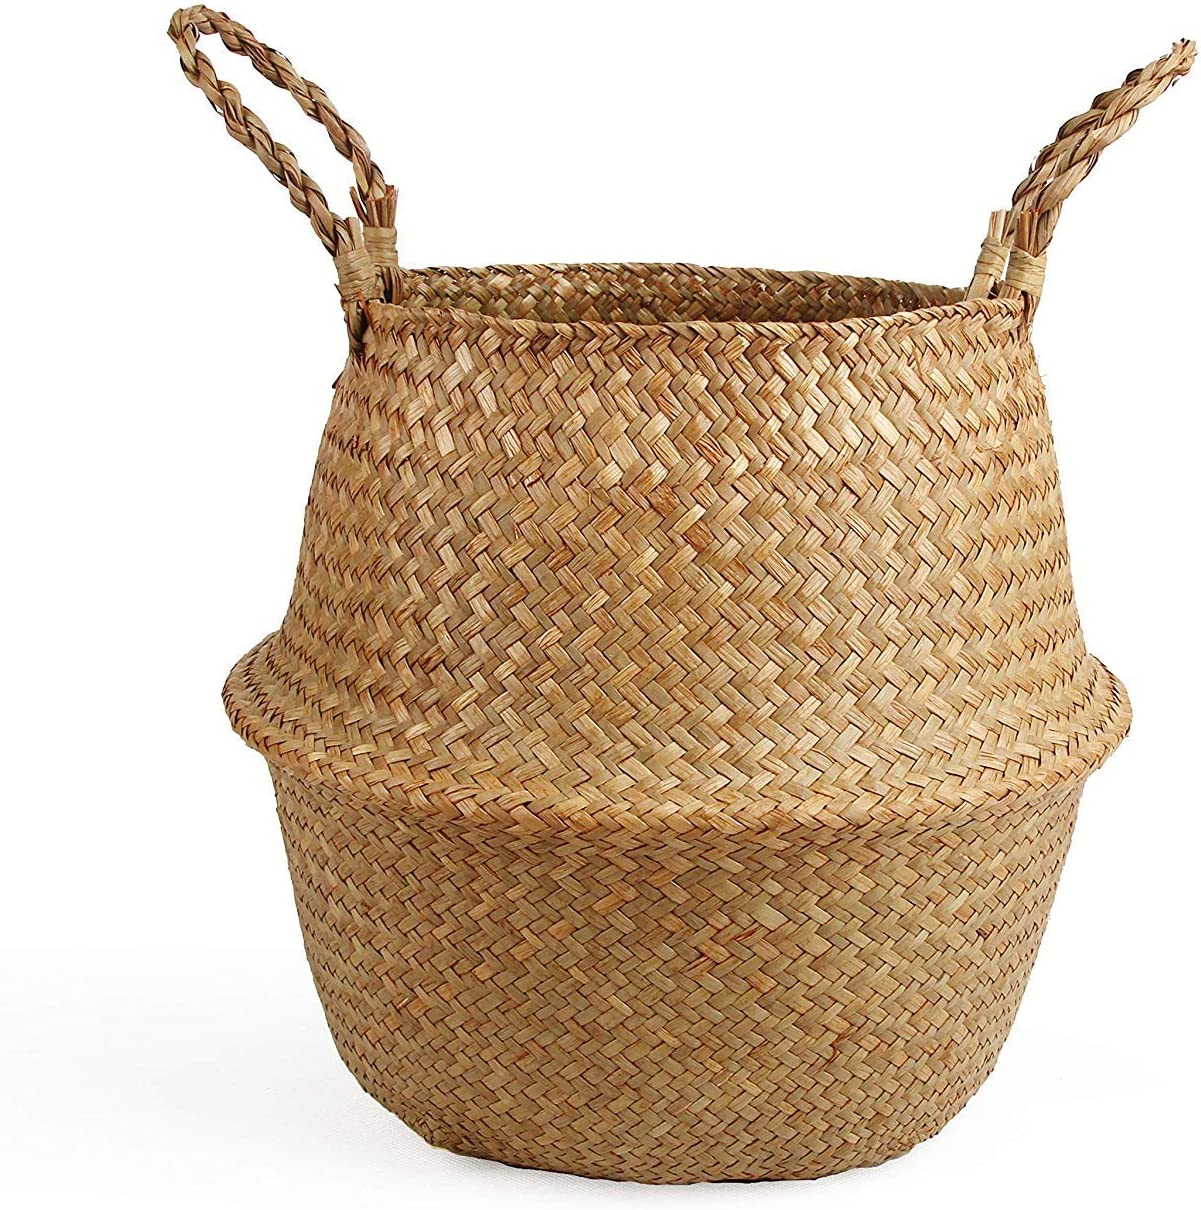 BlueMake Woven Seagrass Belly Basket for Storage Plant Pot Basket and Laundry, Picnic and Grocery Basket (Large, Original)